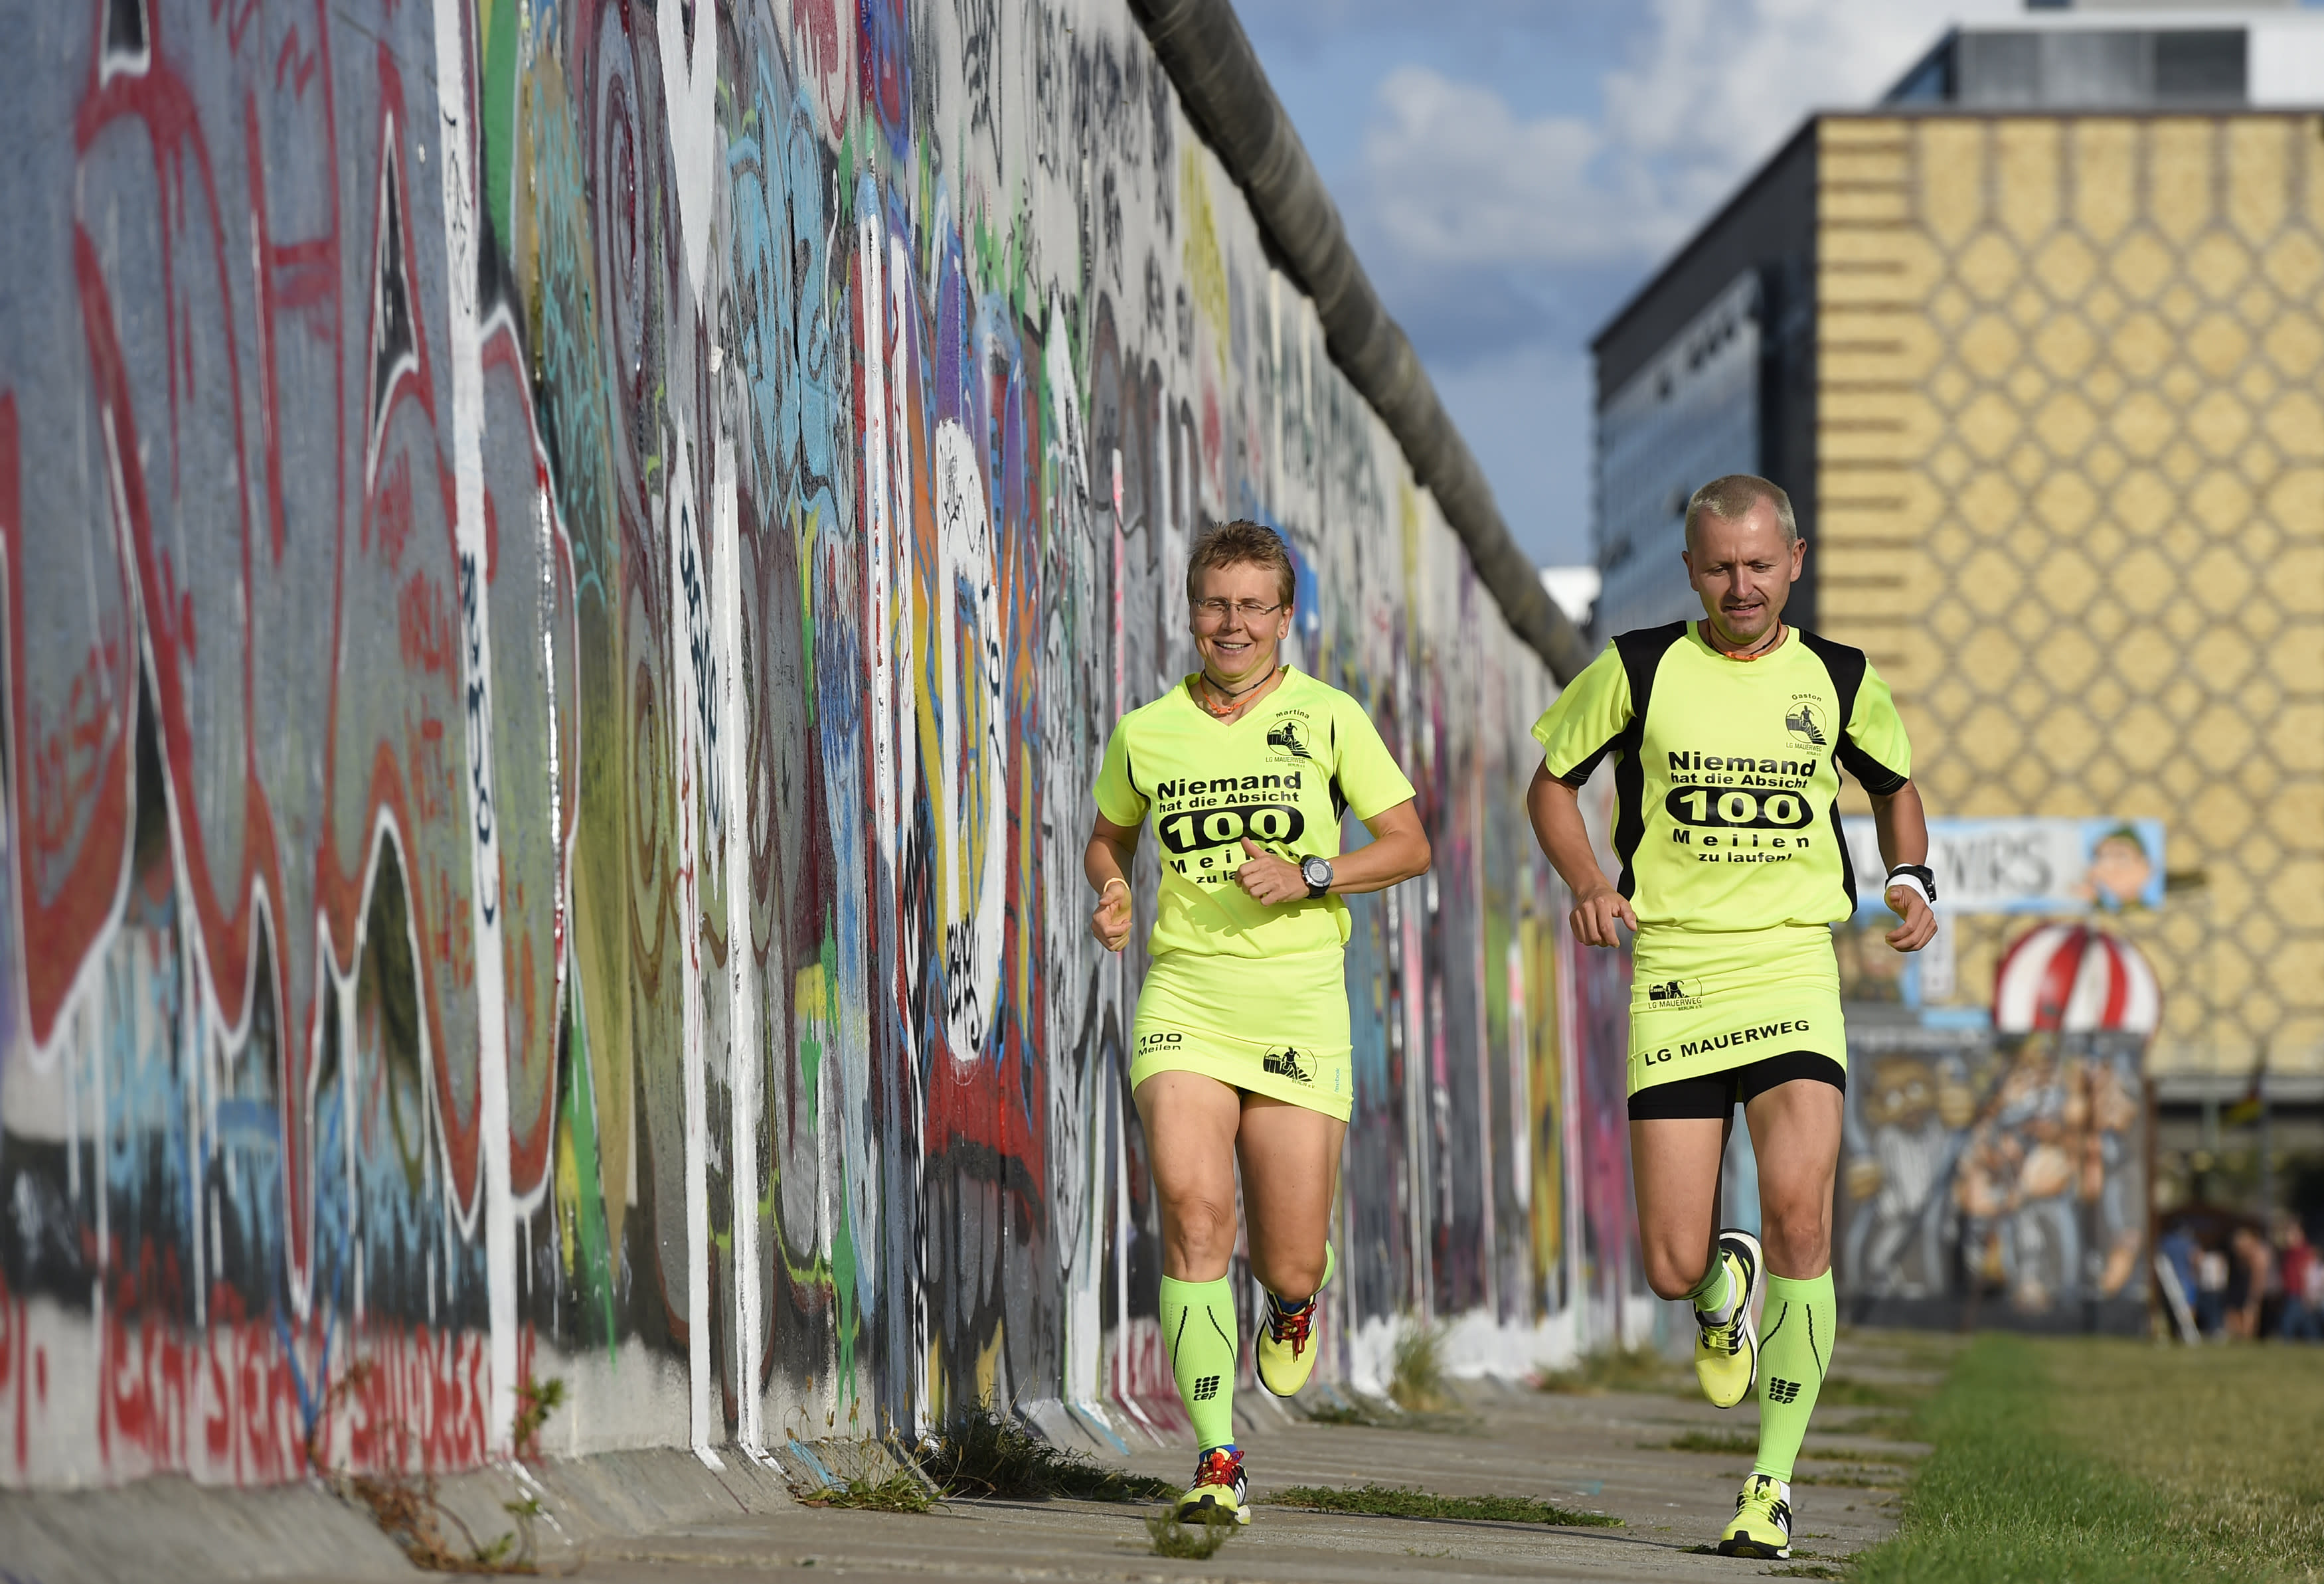 """Martina Schliep and her partner Gaston Pruefer run along the old Berlin Wall on August 11, 2014 as they train before taking part in the """"100MeilenBerlin"""" marathon event (AFP Photo/Tobias Schwarz)"""